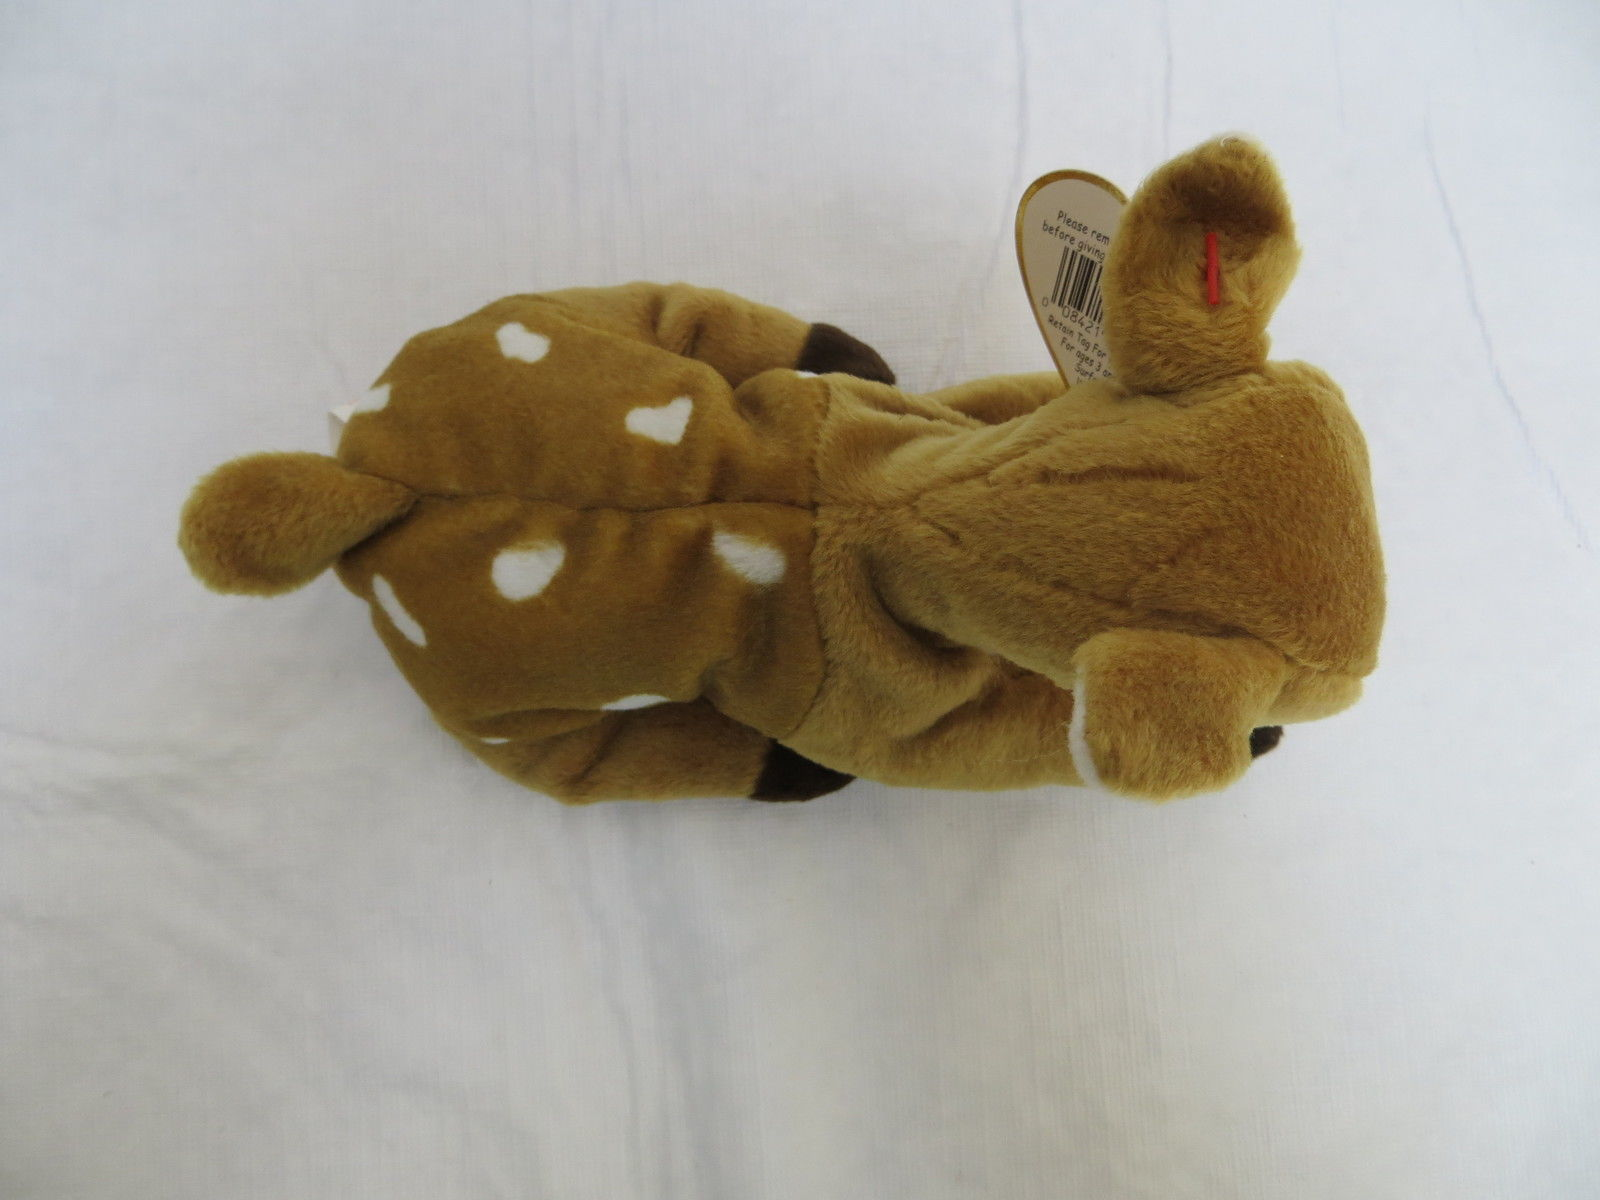 cd5760f7385 ... TY Retired Beanie Baby Whisper the Spotted Fawn Deer MWT ...